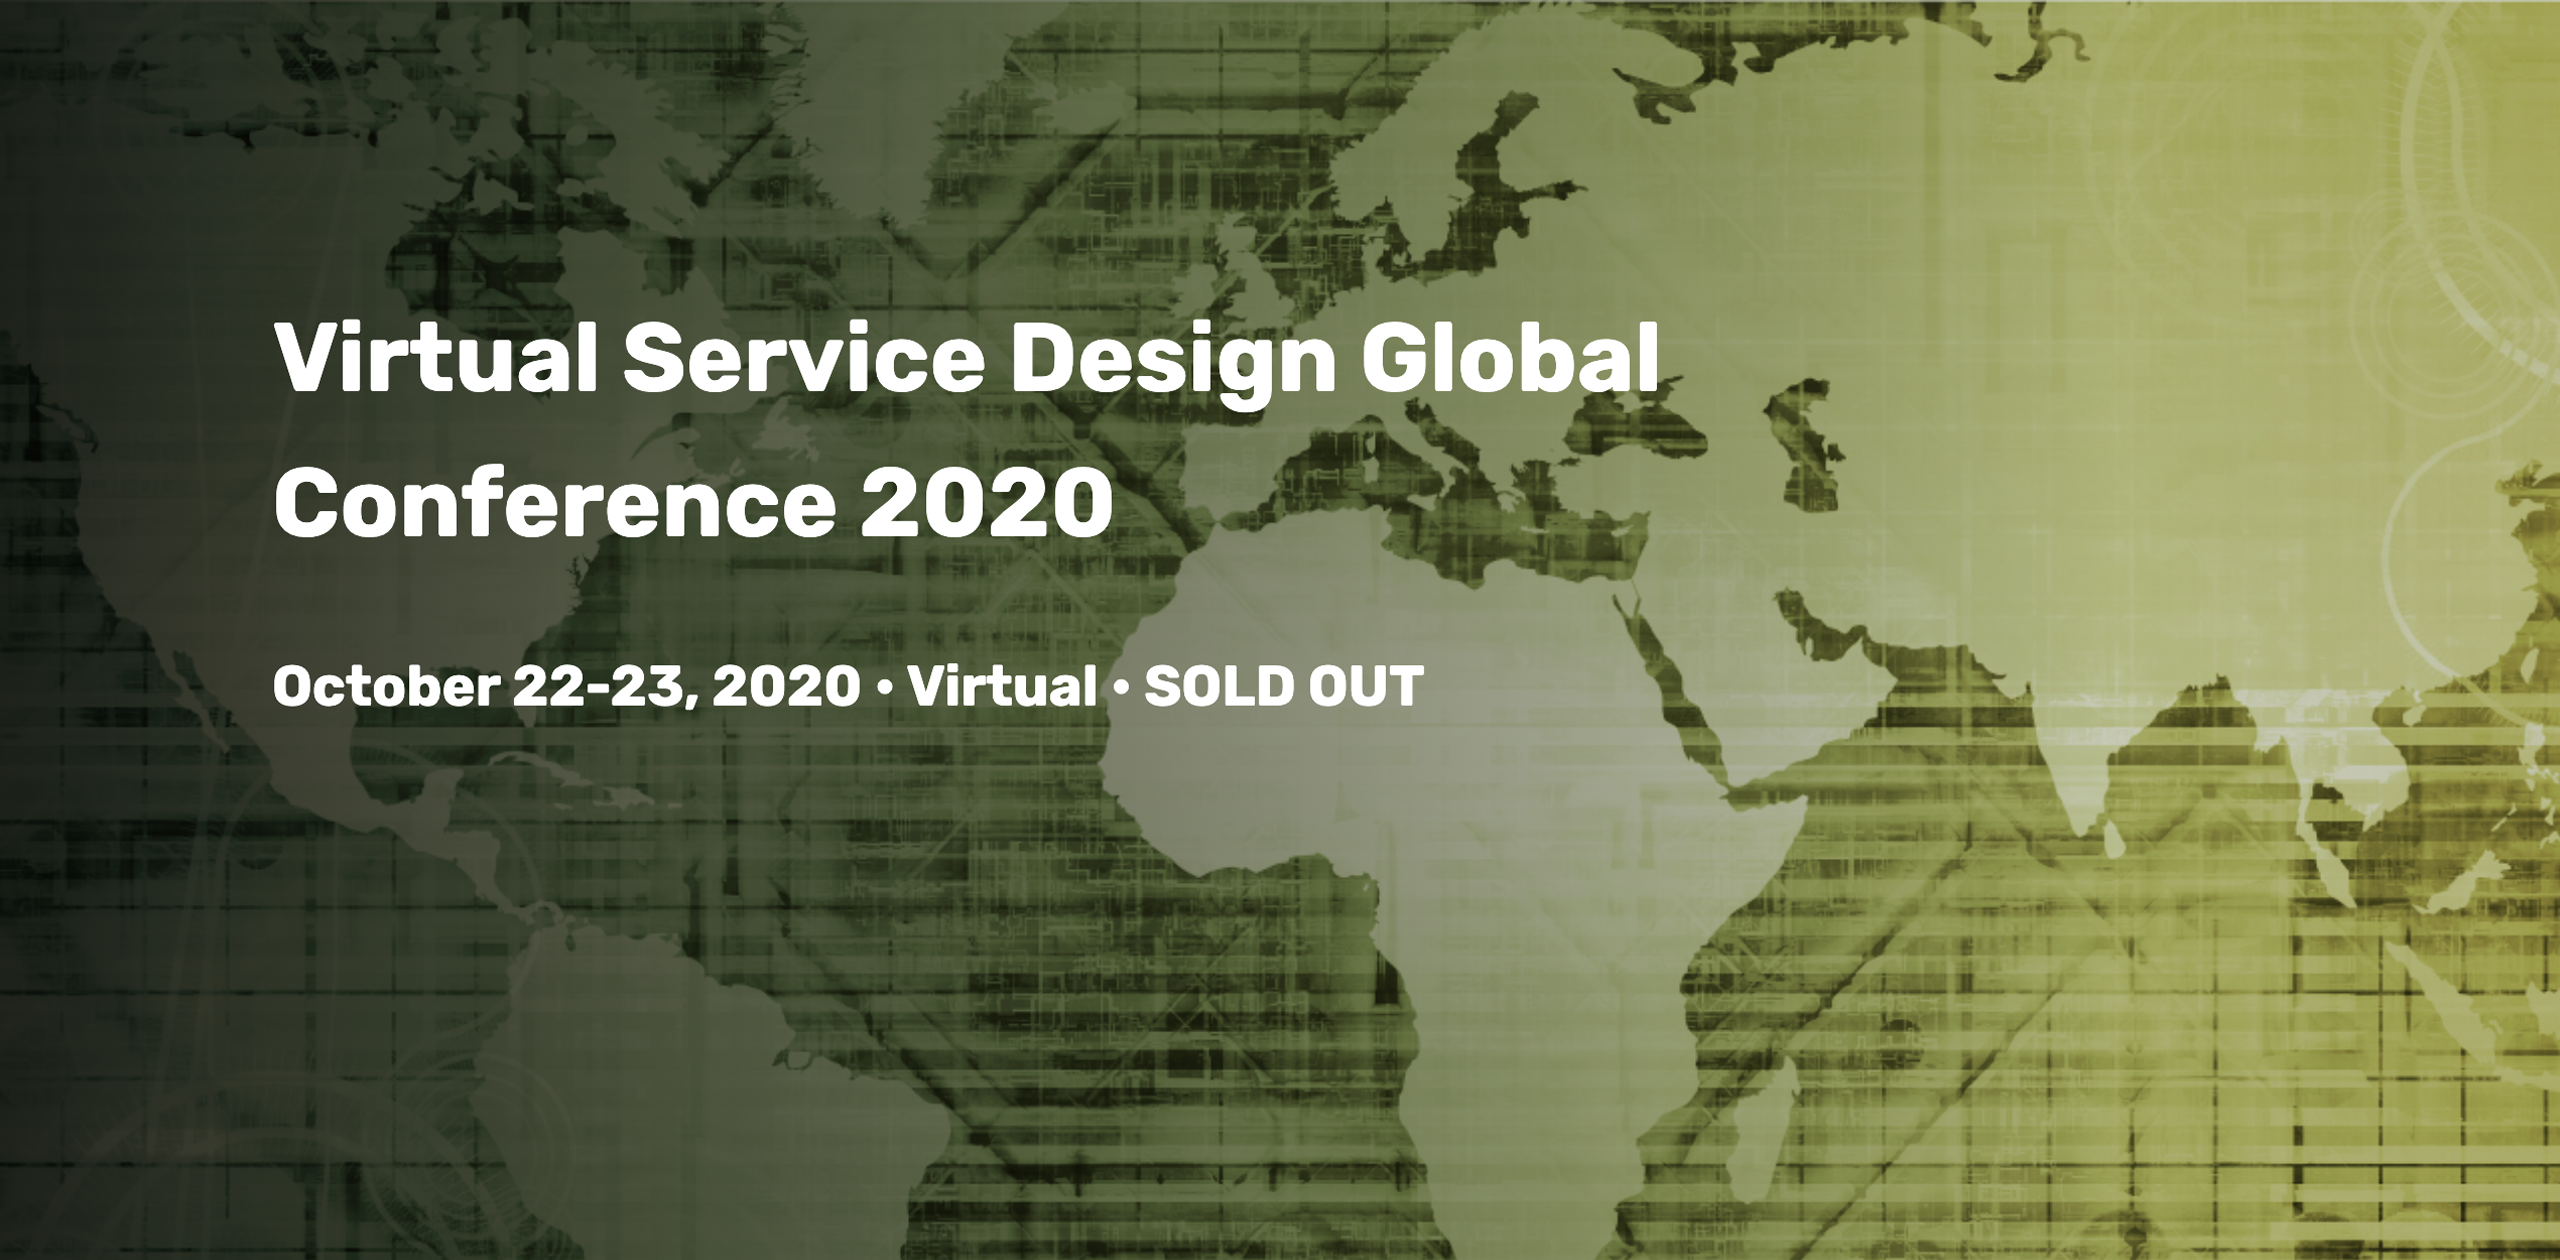 Virtual Service Design Global Conference 2020